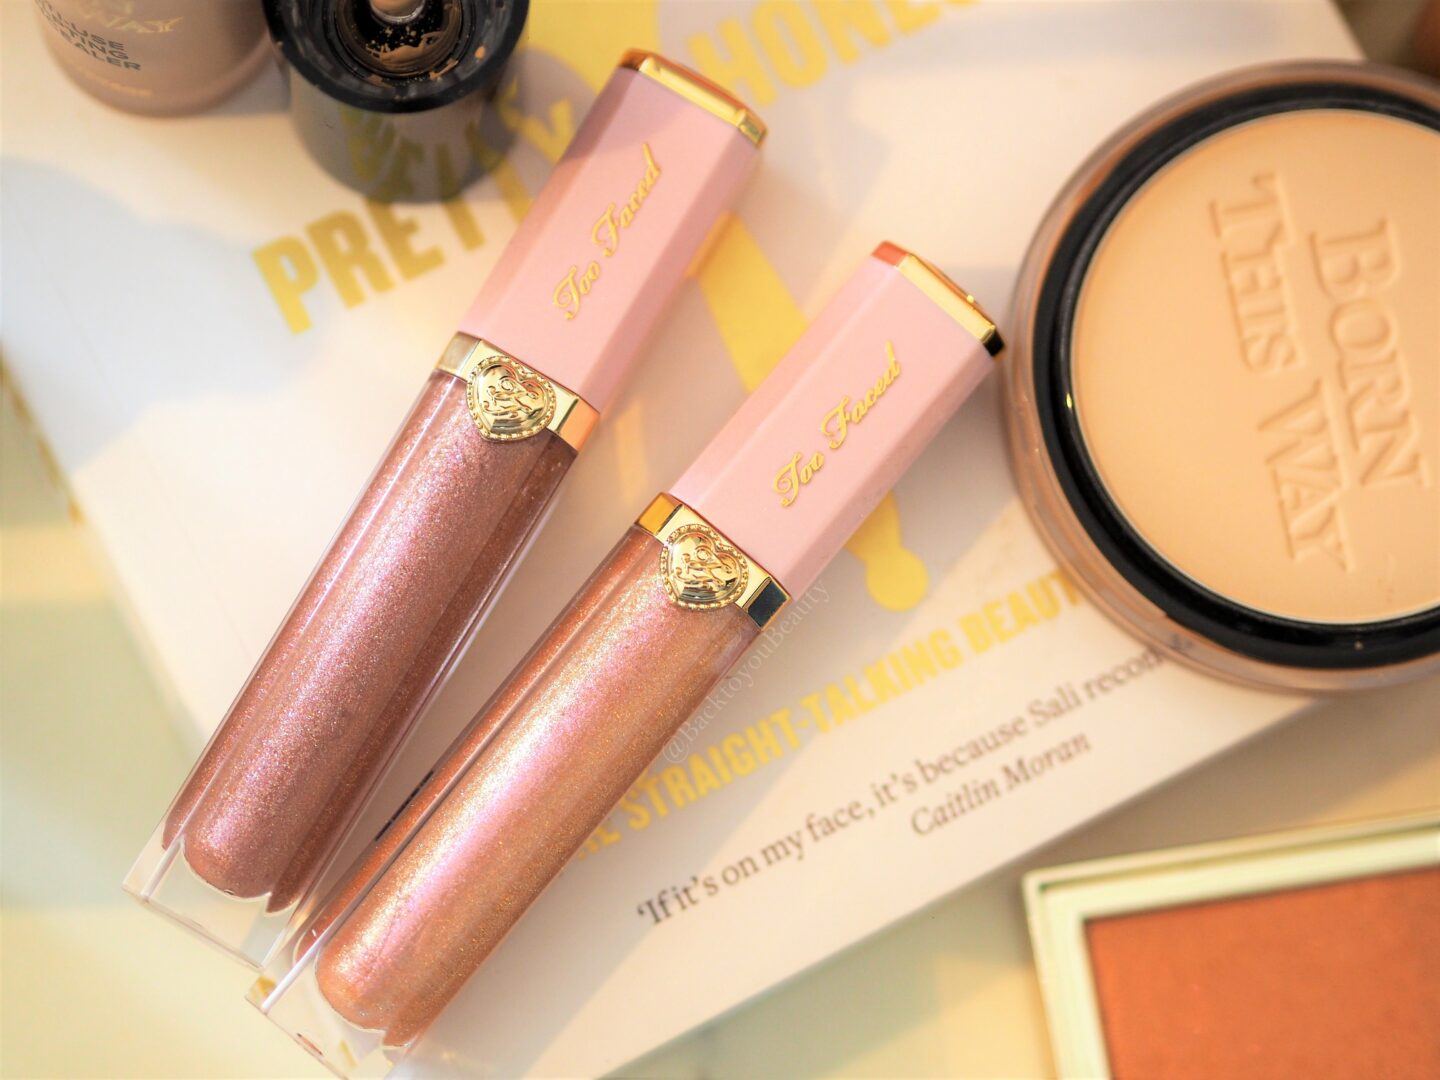 Too Faced Rich & Dazzling High-Shine Sparkling Lip Glosses